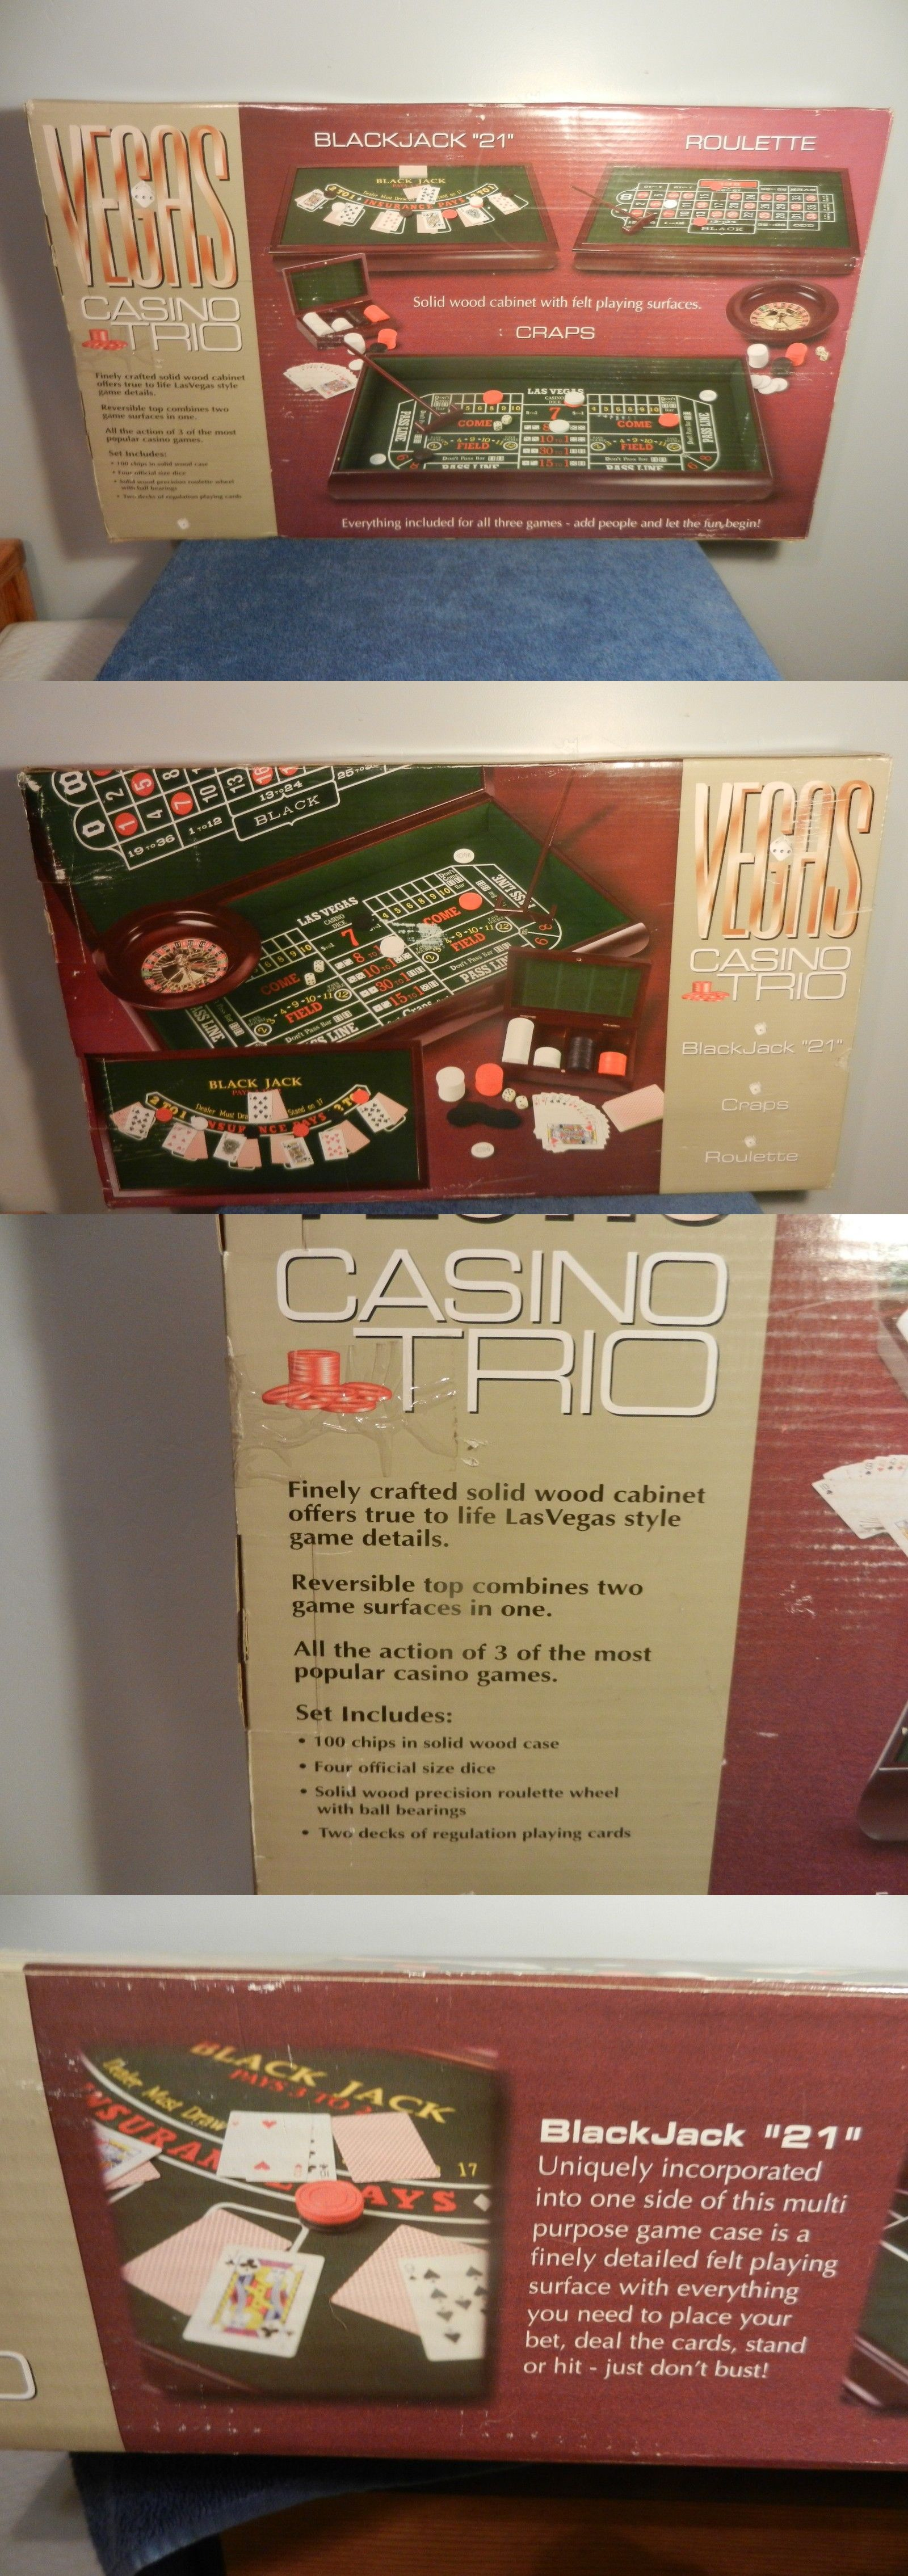 Card tables and tabletops 166572 vegas casino trio black